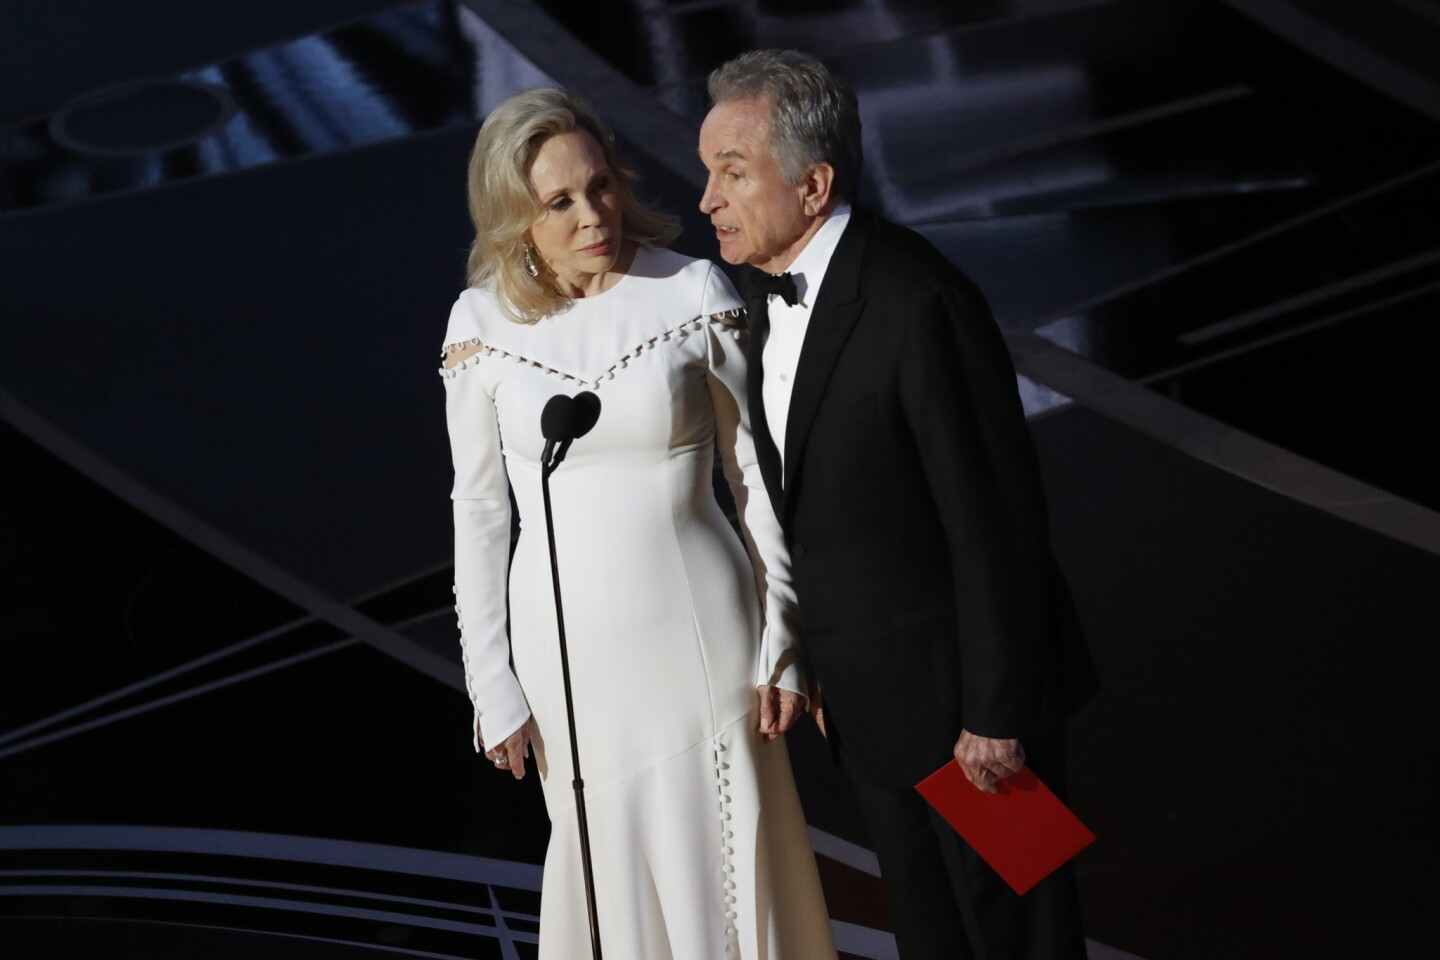 Presenters Faye Dunaway and Warren Beatty are onstage and about to read the Oscar winner for best picture.